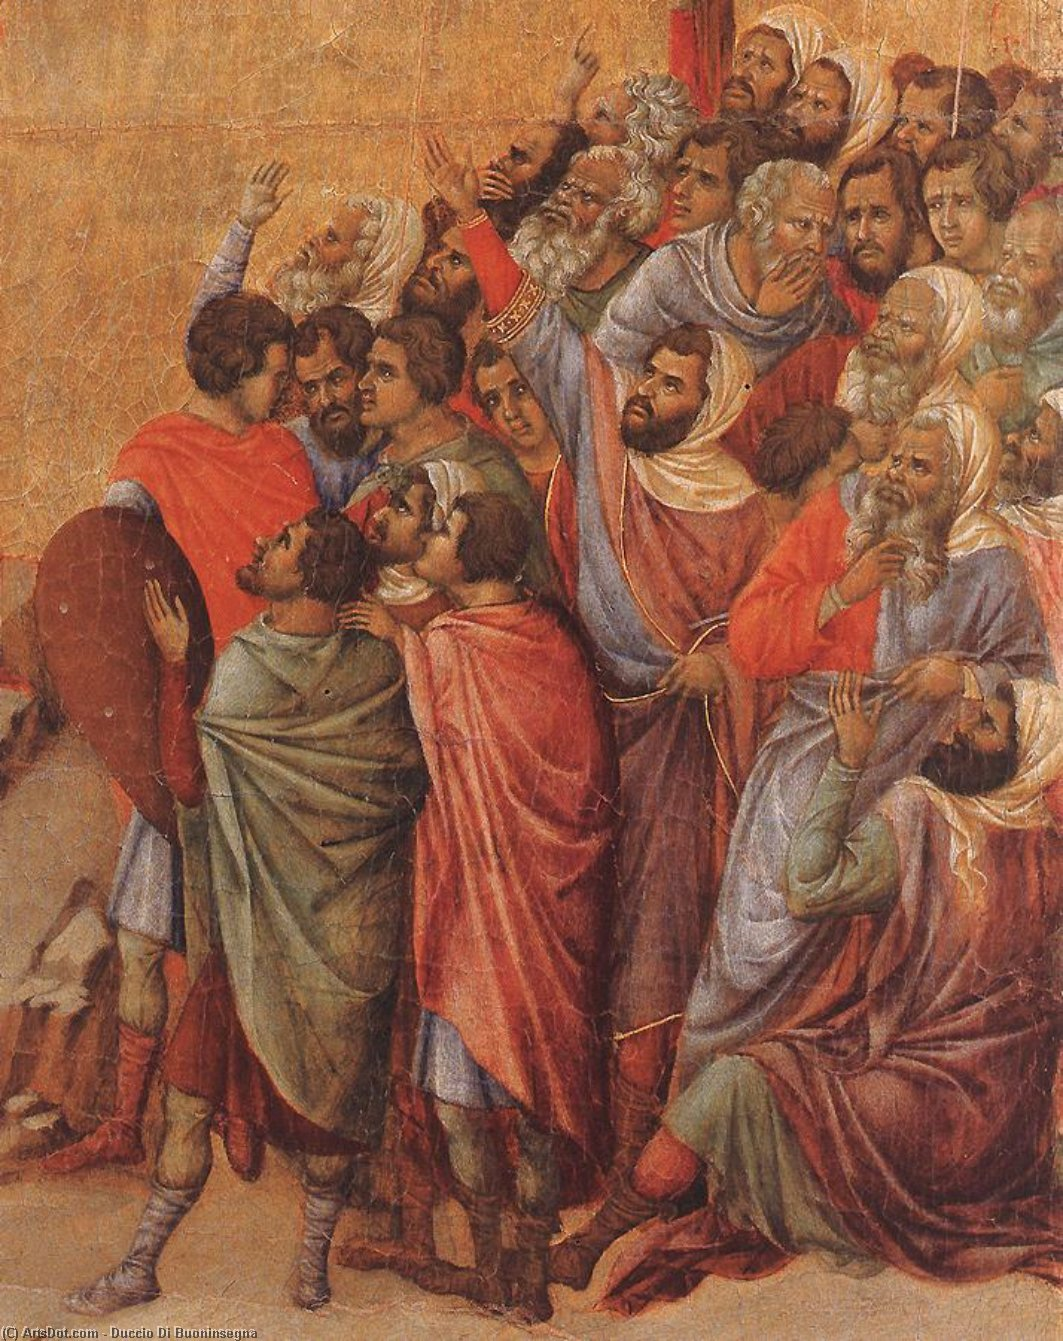 Wikioo.org - The Encyclopedia of Fine Arts - Painting, Artwork by Duccio Di Buoninsegna - Crucifix (detail)